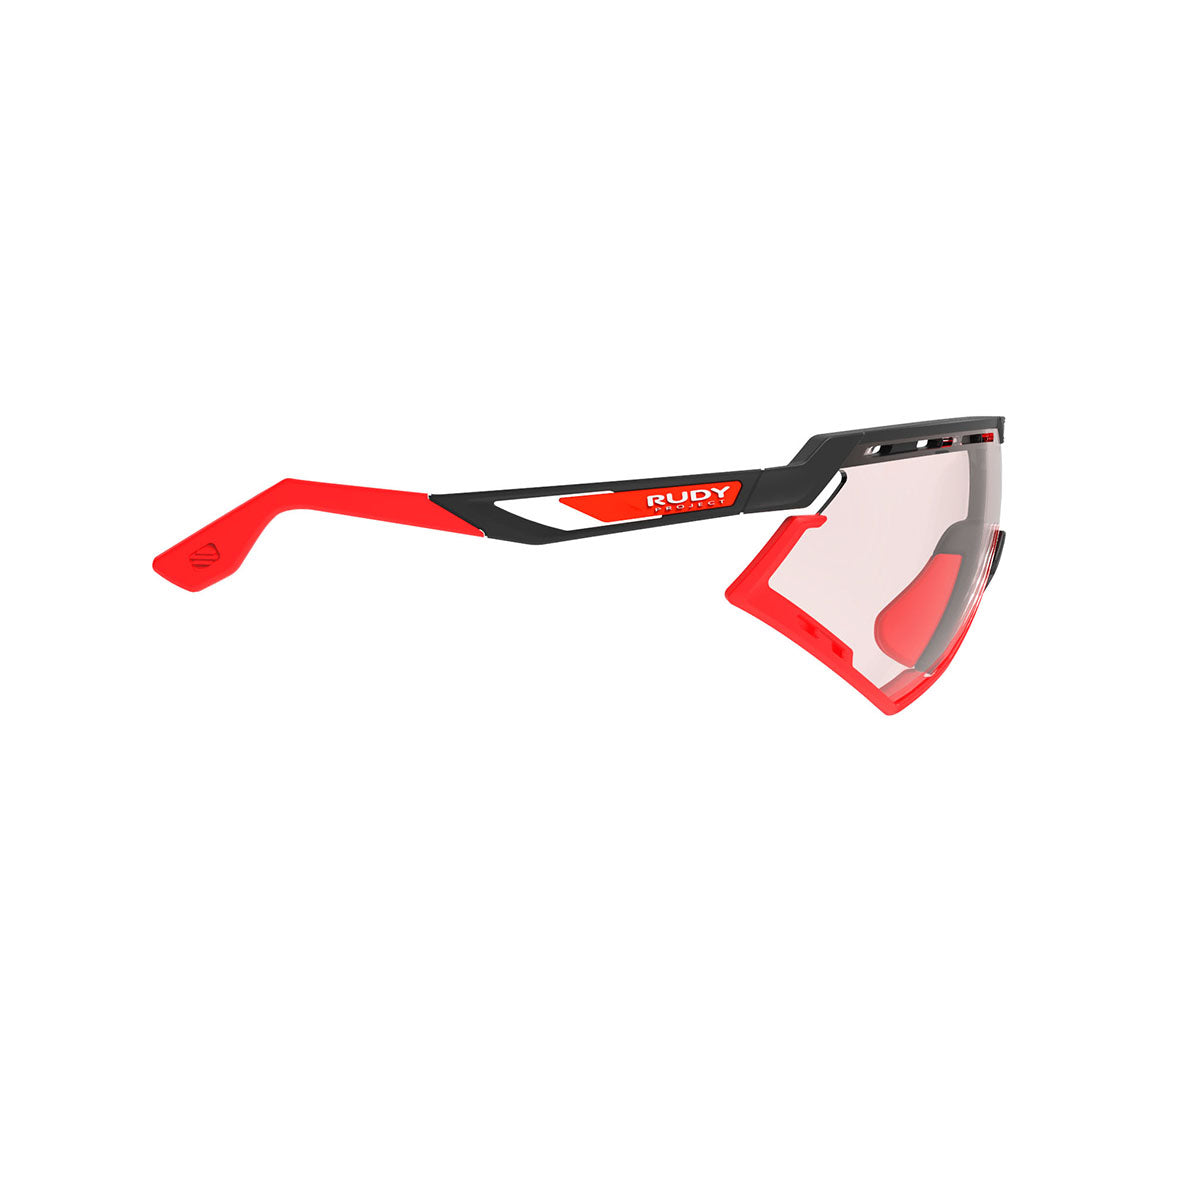 Rudy Project - Defender - frame color: Matte Black - lens color: ImpactX-2 Photochromic Clear to Red - Bumper Color: Red - photo angle: Side Variant Hover Image